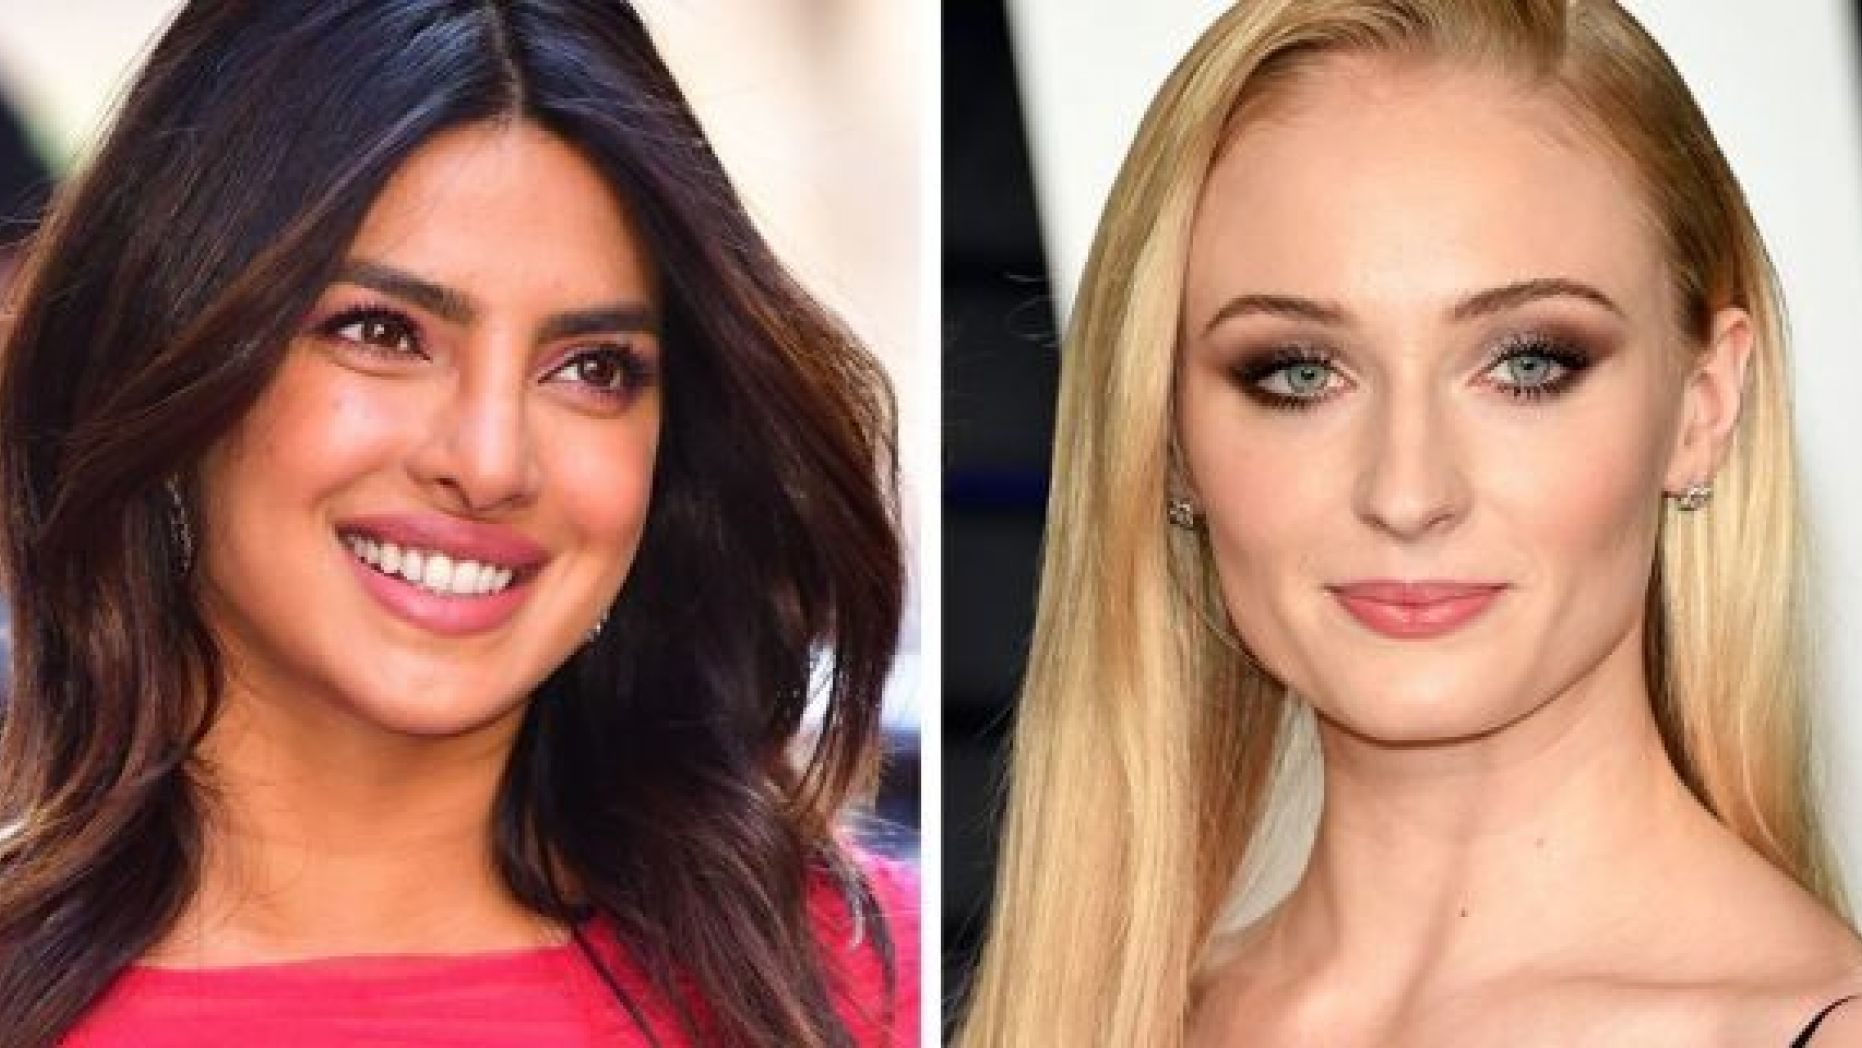 Actresses Priyanka Chopra, left, and Sophie Turner enjoyed some fun in the sun with significant others Nick and Joe Jonas.